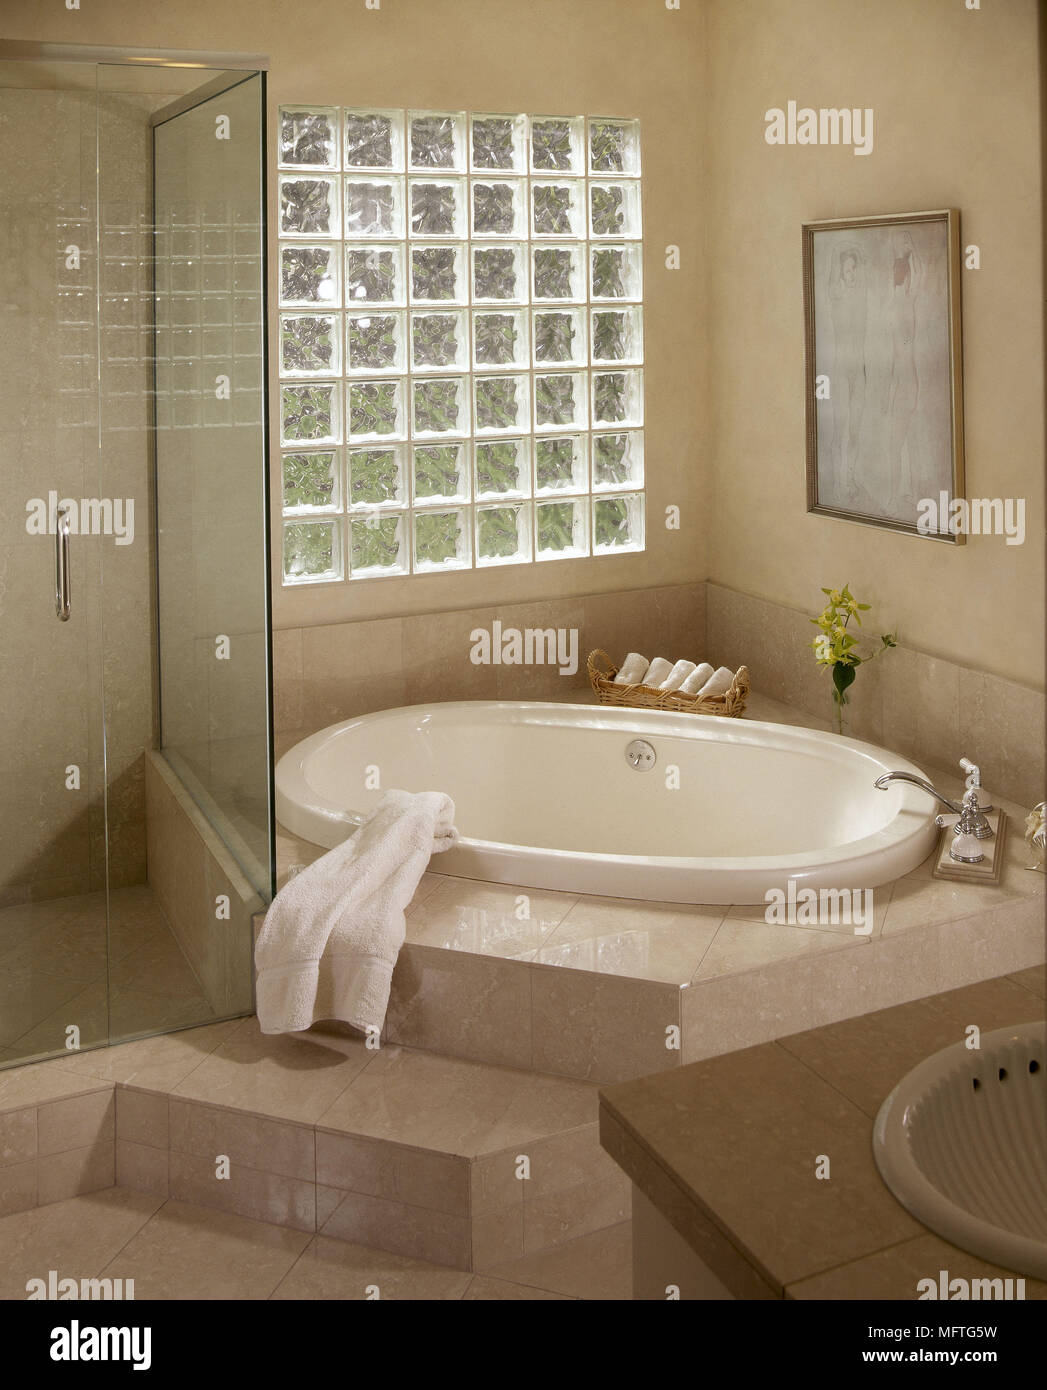 Modern bathroom sunken bath glass brick window shower glass screen ...